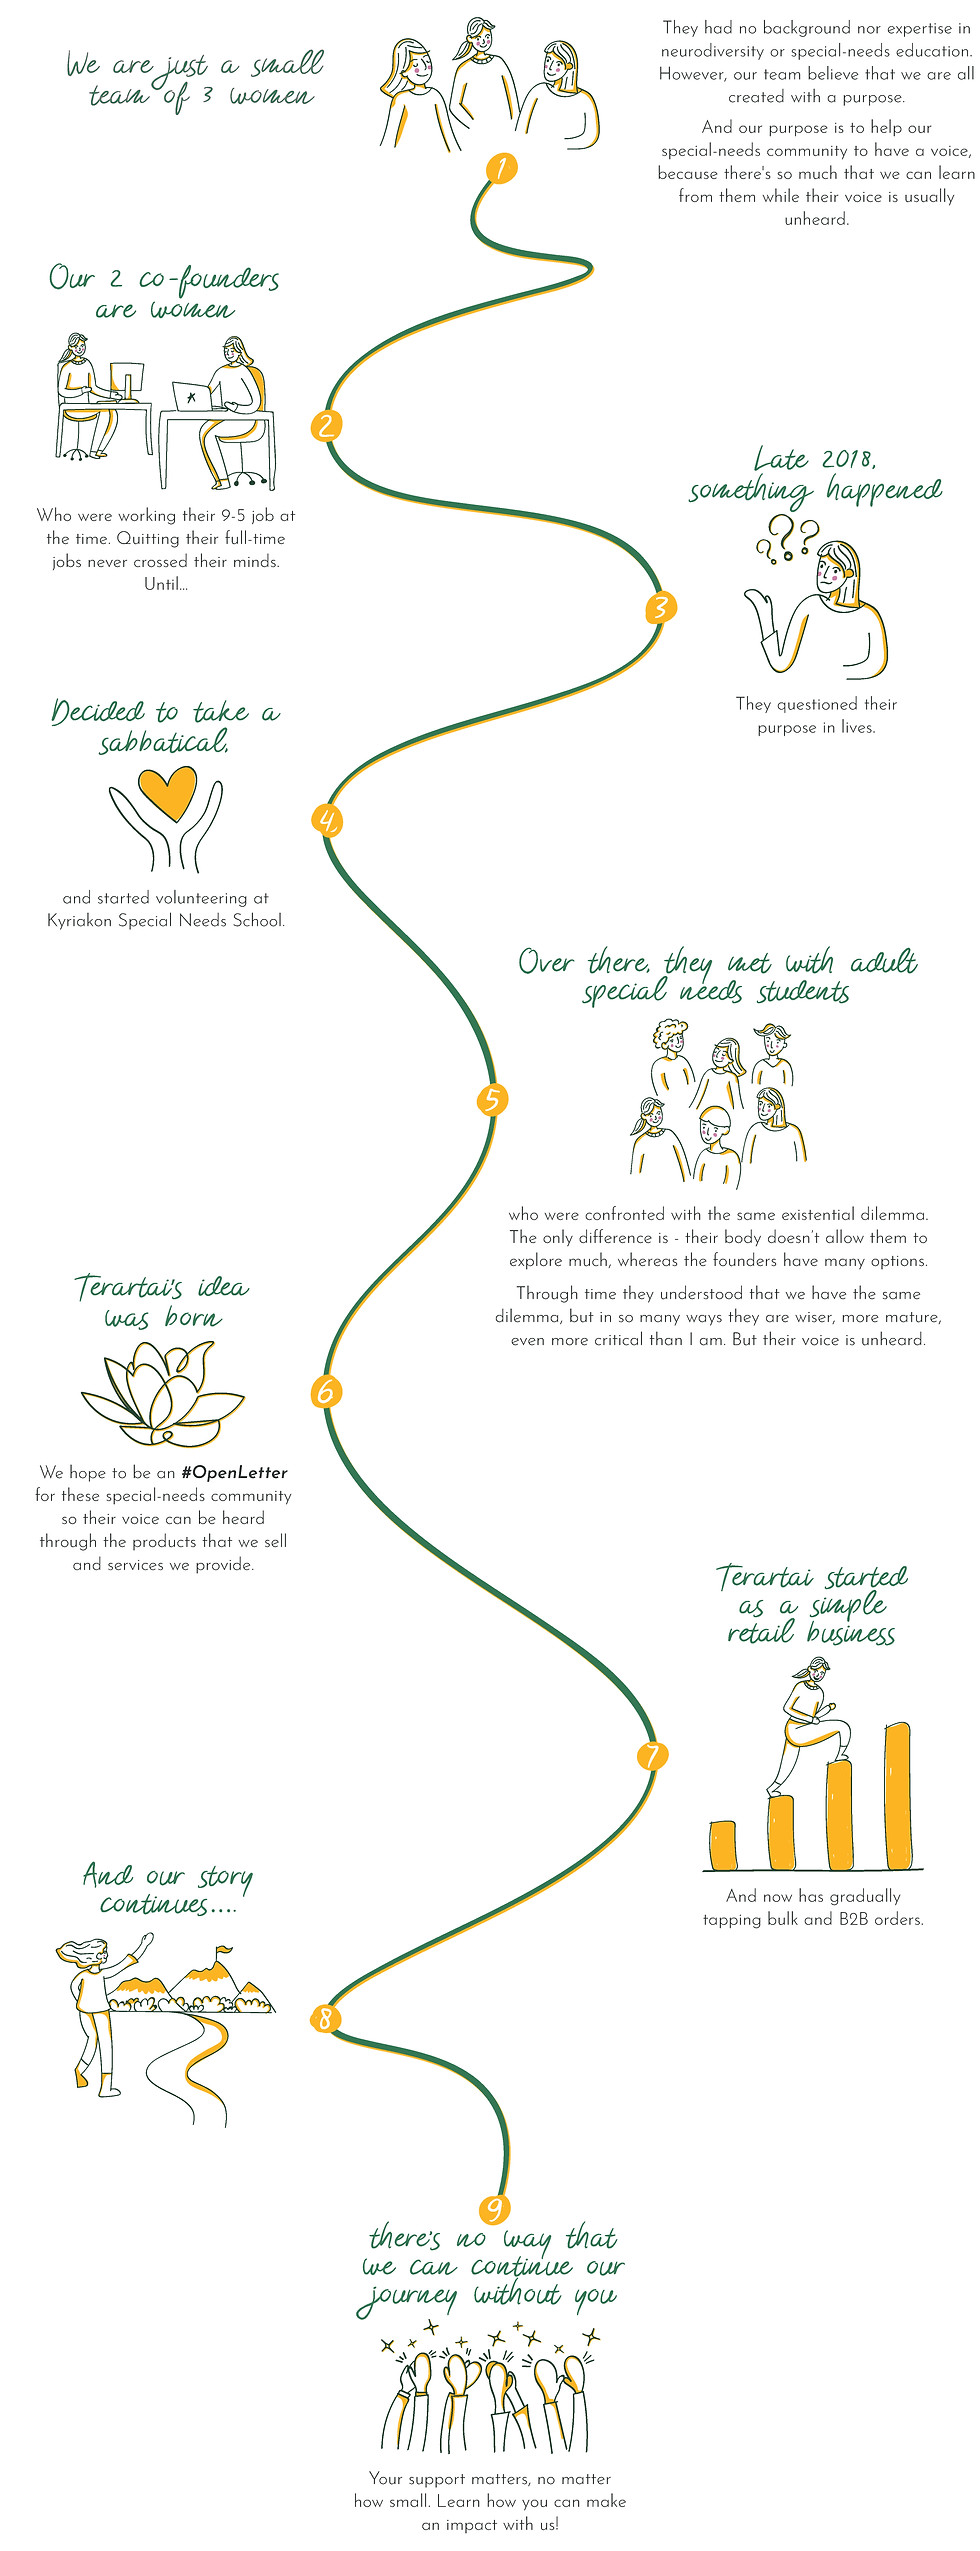 about-us-infographic-01.jpg